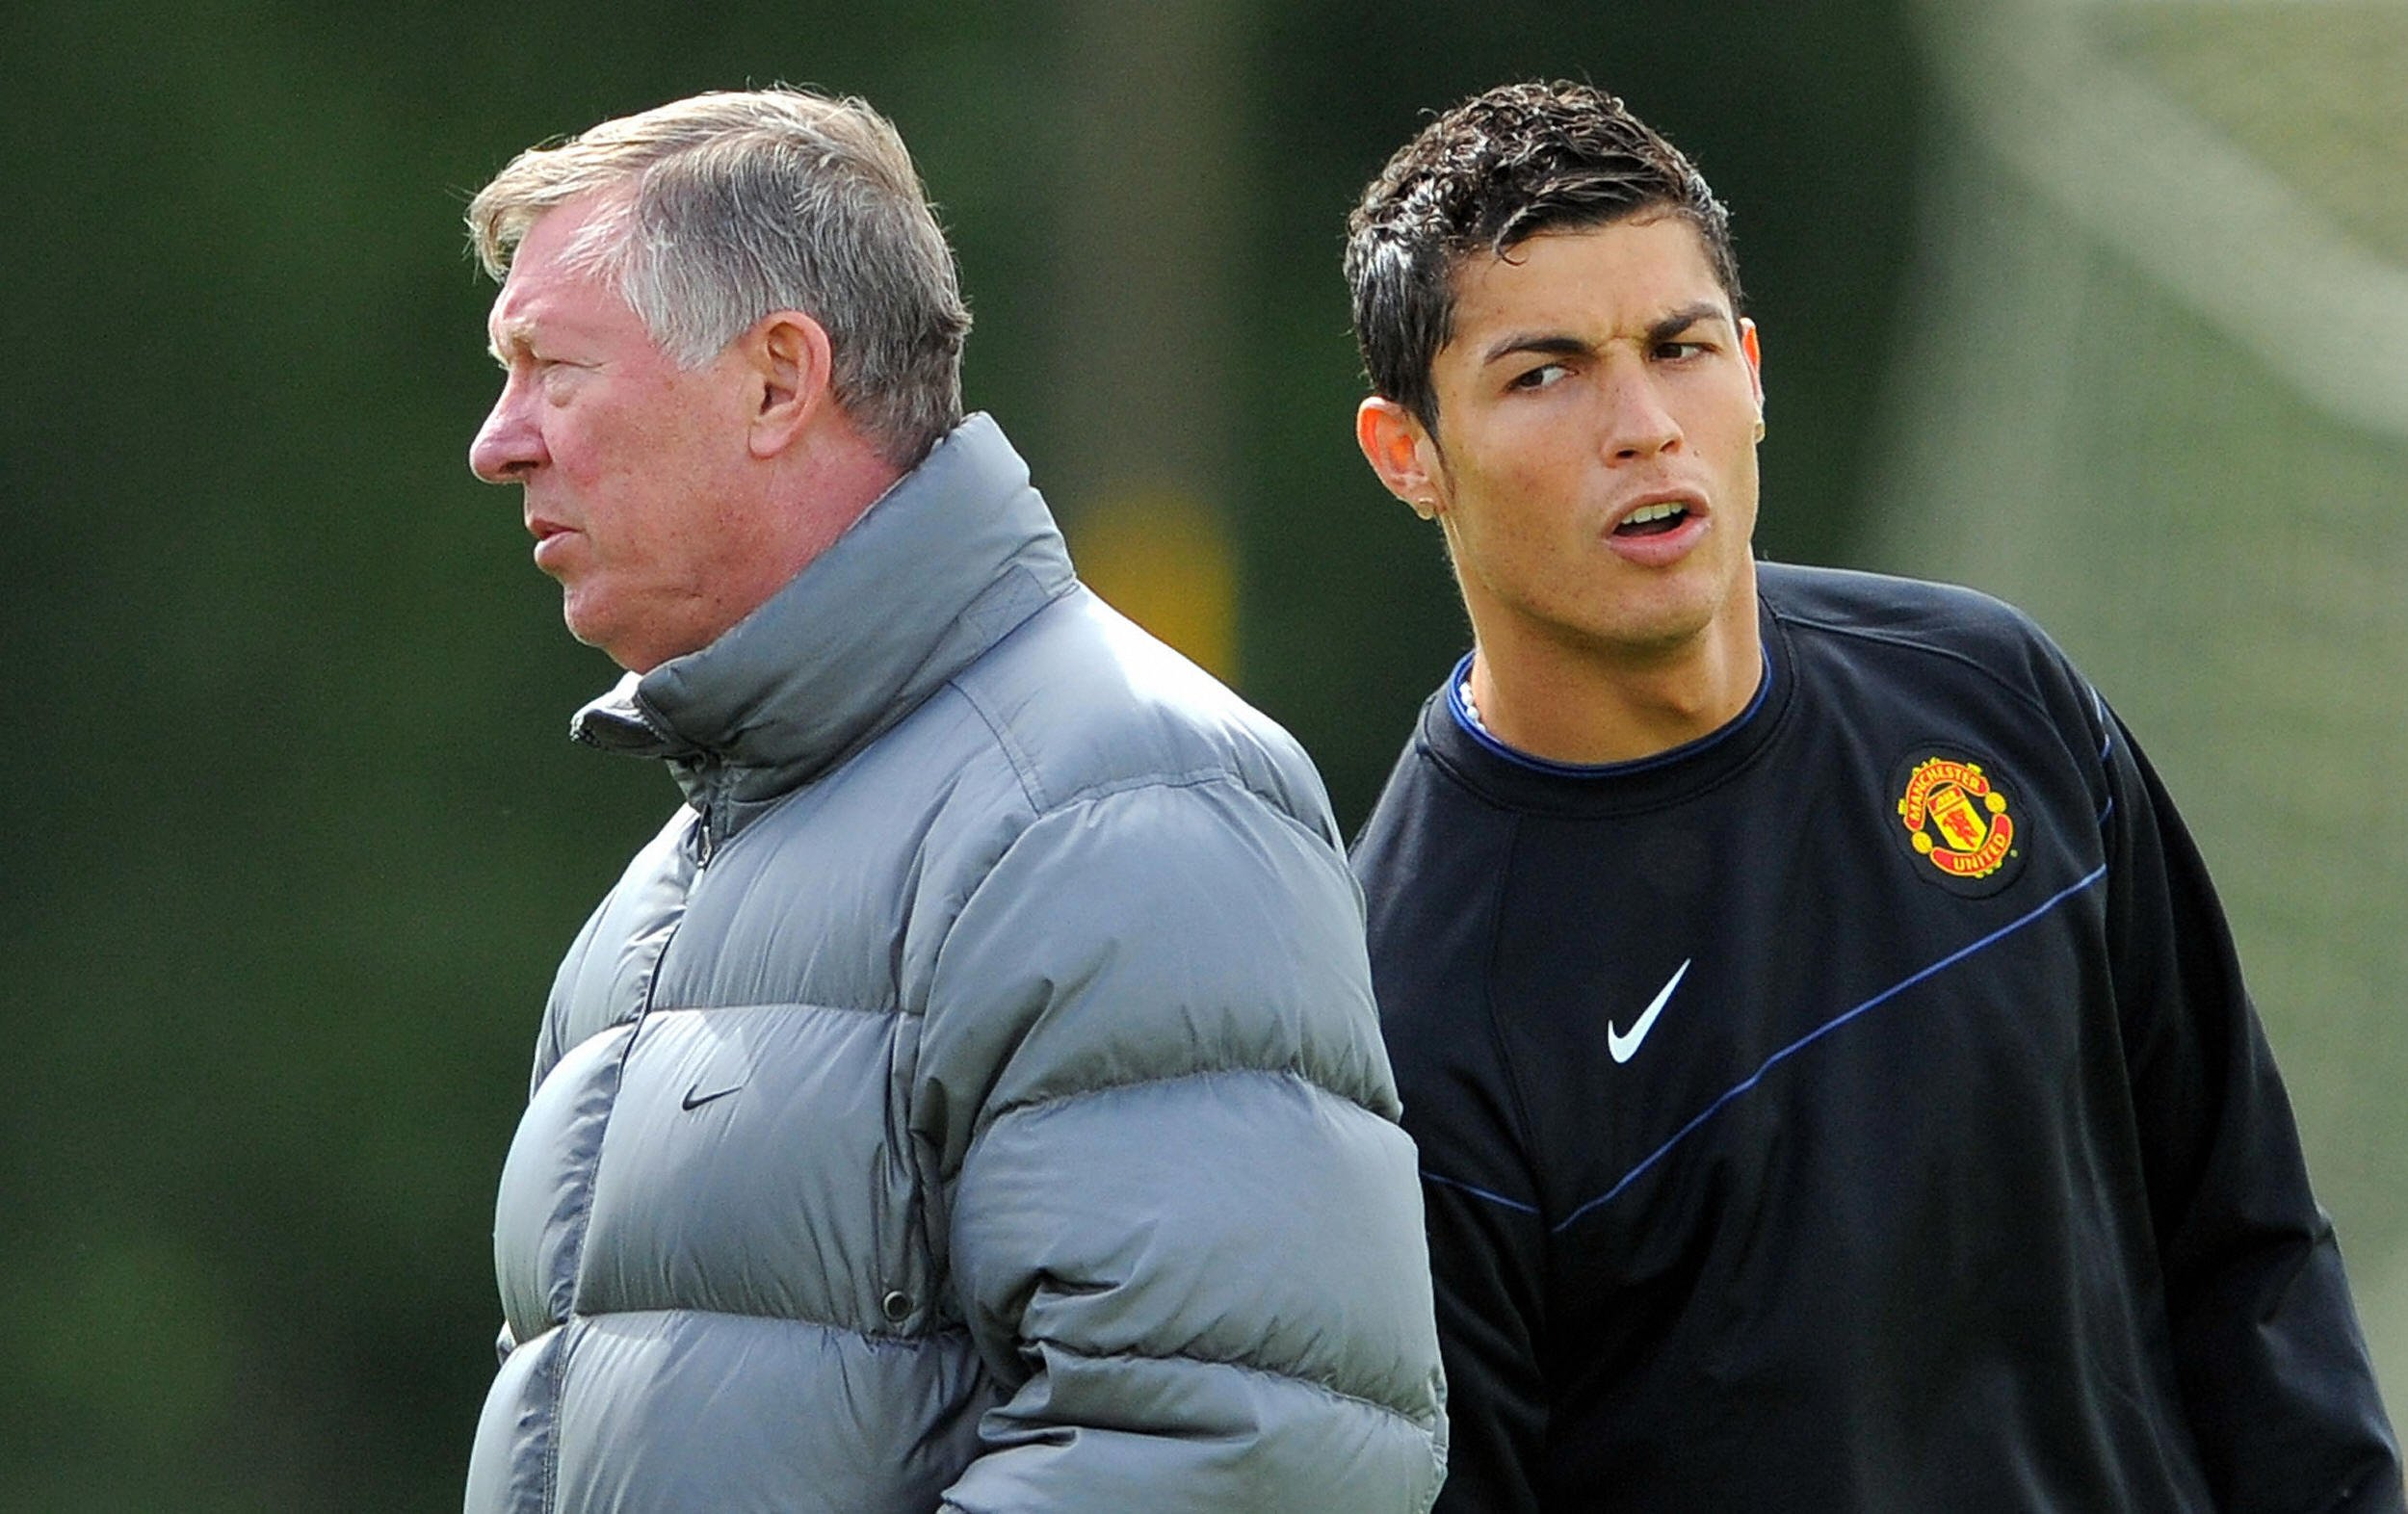 Sir Alex Ferguson, left, with former Manchester United star Cristiano Ronaldo.